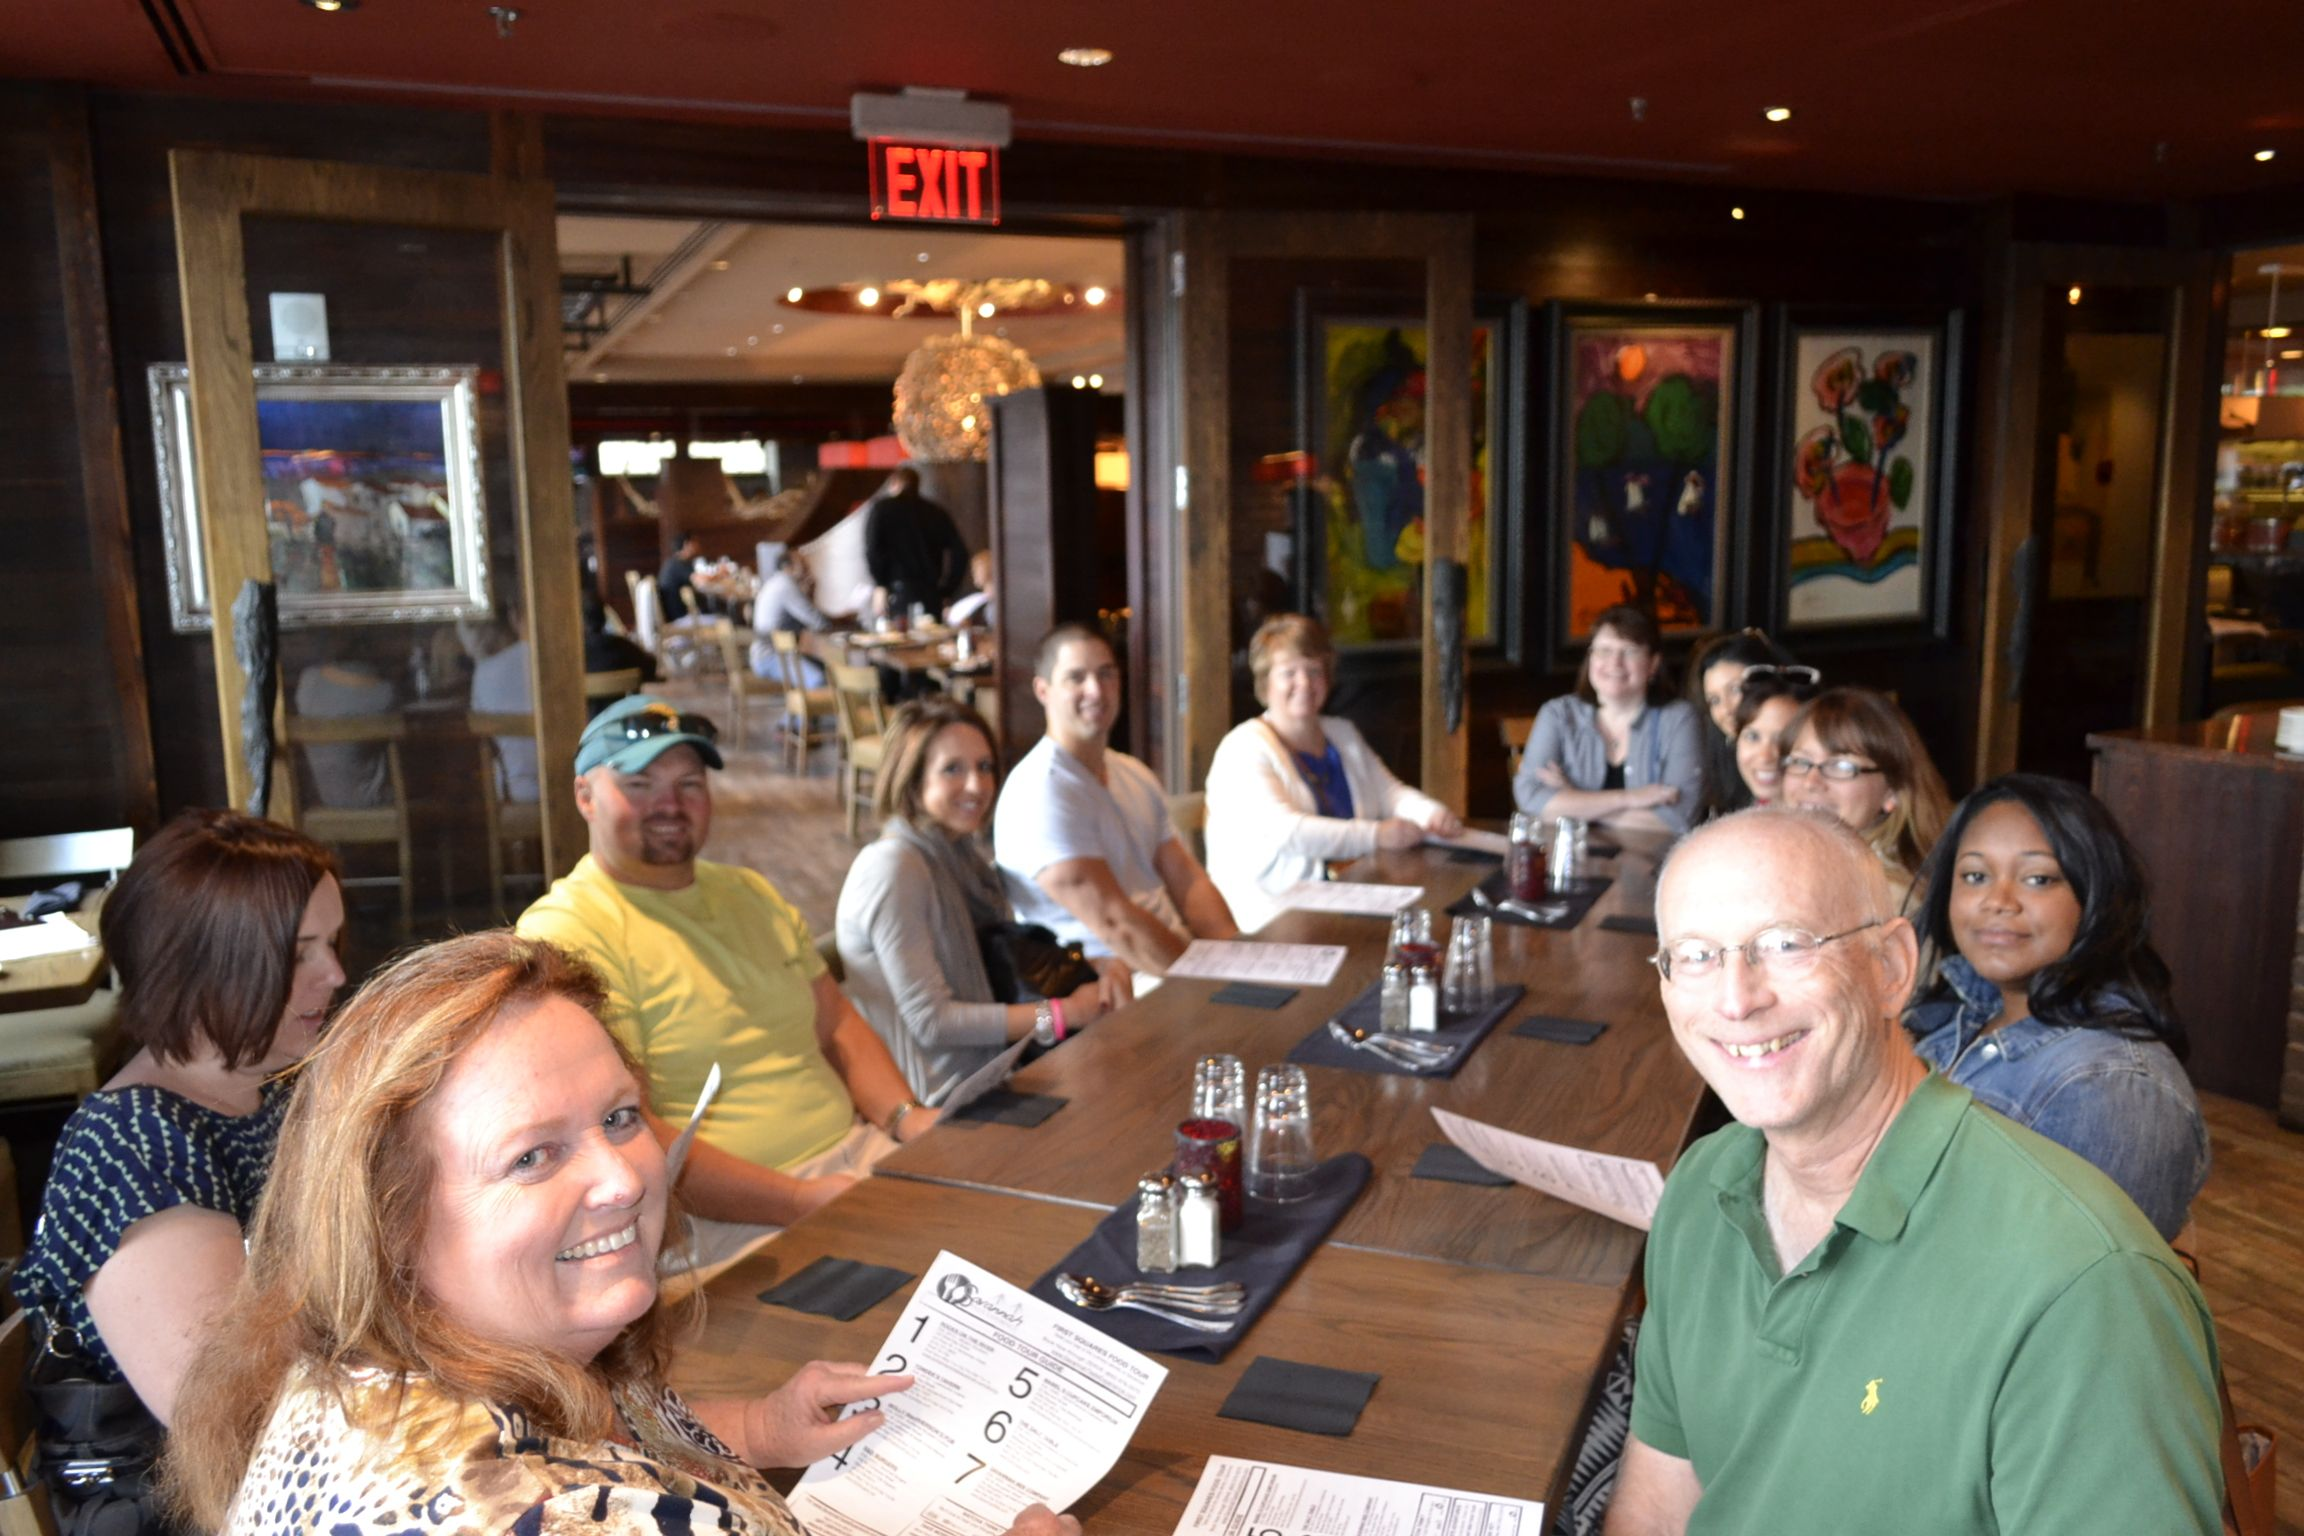 Saturday tour-goers about to sink their spoons into some She Crab Soup from Rocks on the River. #Savannah #SavannahTaste #RiverStreet